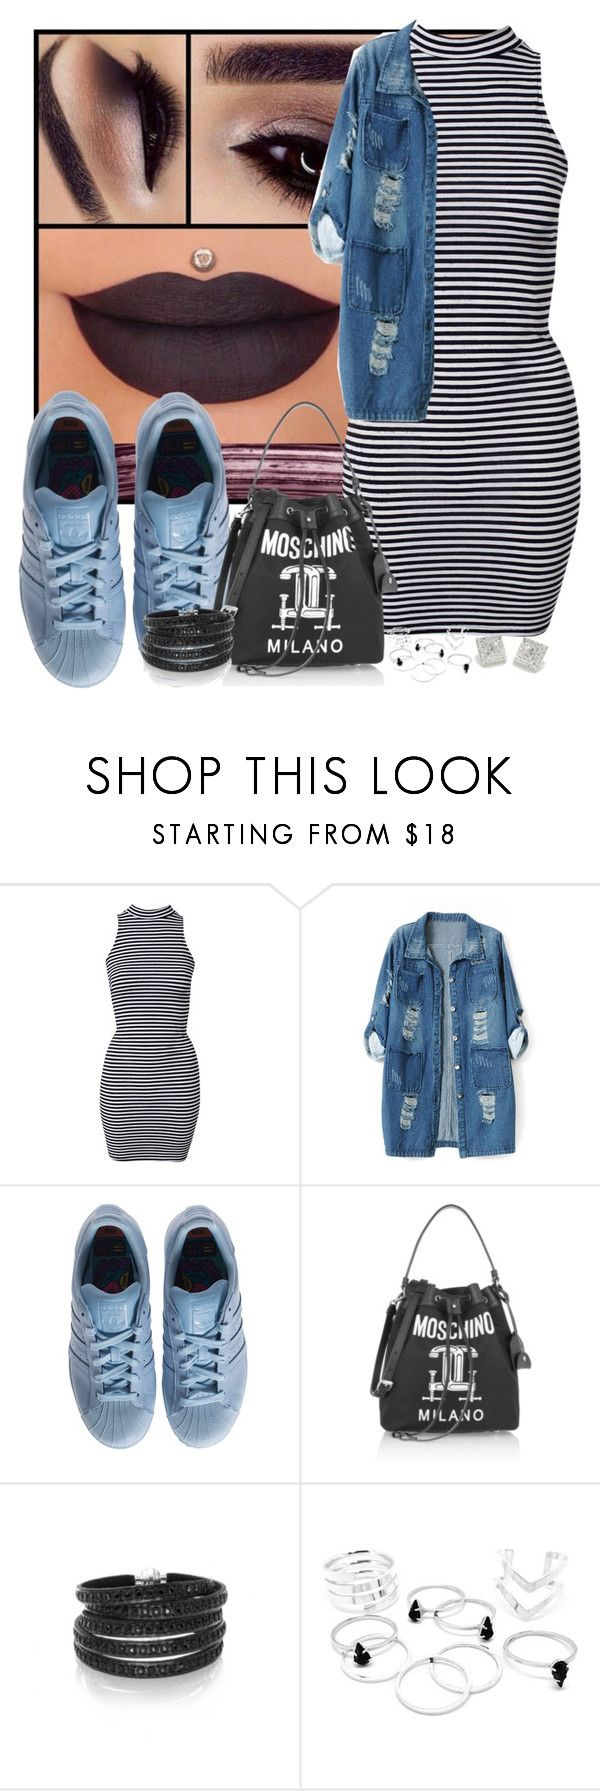 """""""You can keep your money baby ✌🏾️"""" by mrs-brown-carter ❤ liked on Polyvore featuring River Island, Chicnova Fashion, adidas, Moschino, Sif Jakobs Jewellery and CC SKYE"""